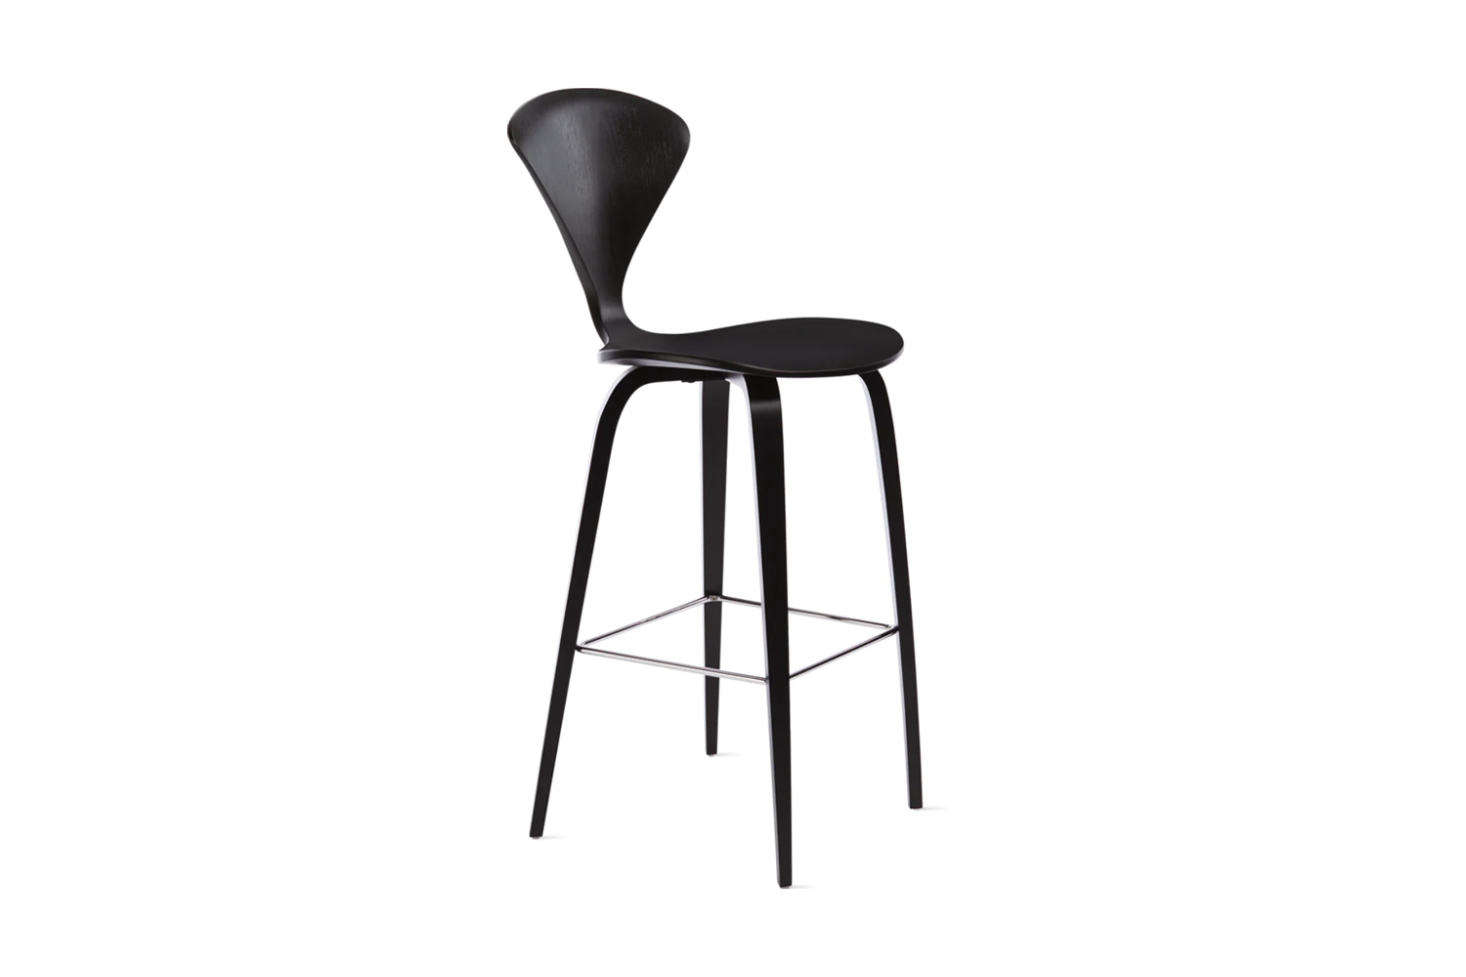 Designed by Norman Cherner, the Cherner Stool comes in Walnut or Classic Ebony (shown); $9 for the counter height size at Design Within Reach.